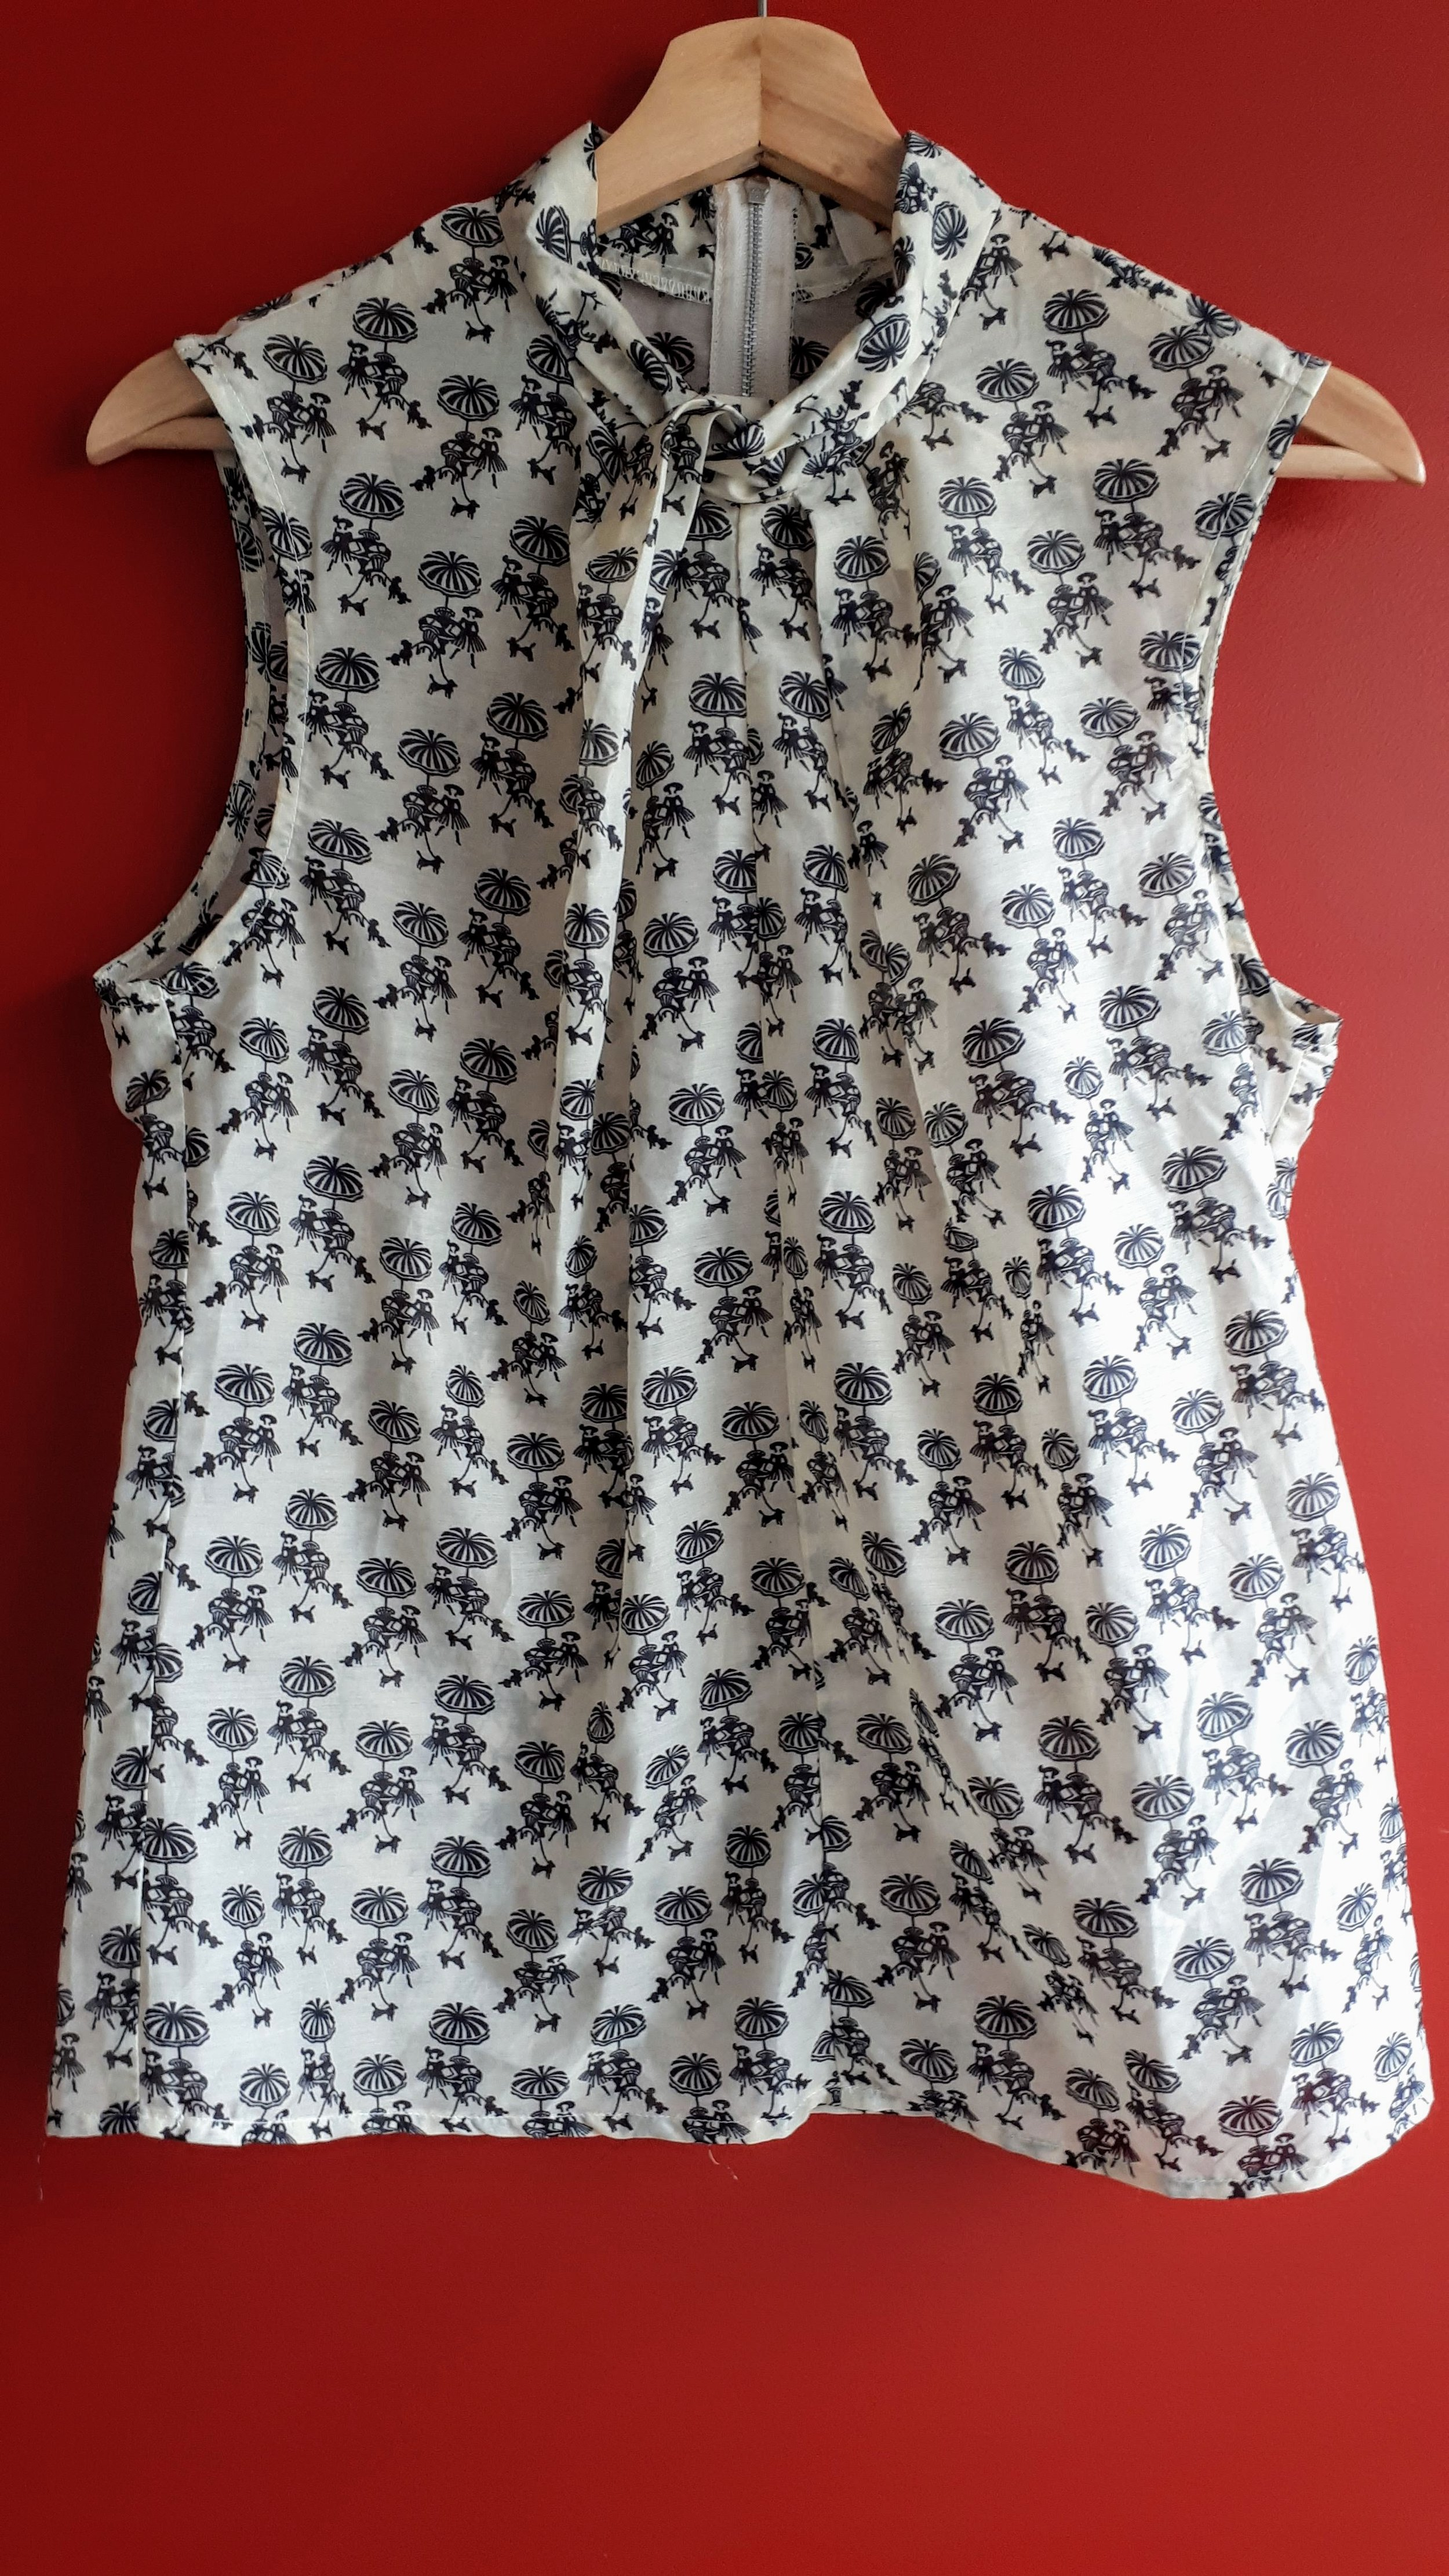 Louche top; Size S, $18